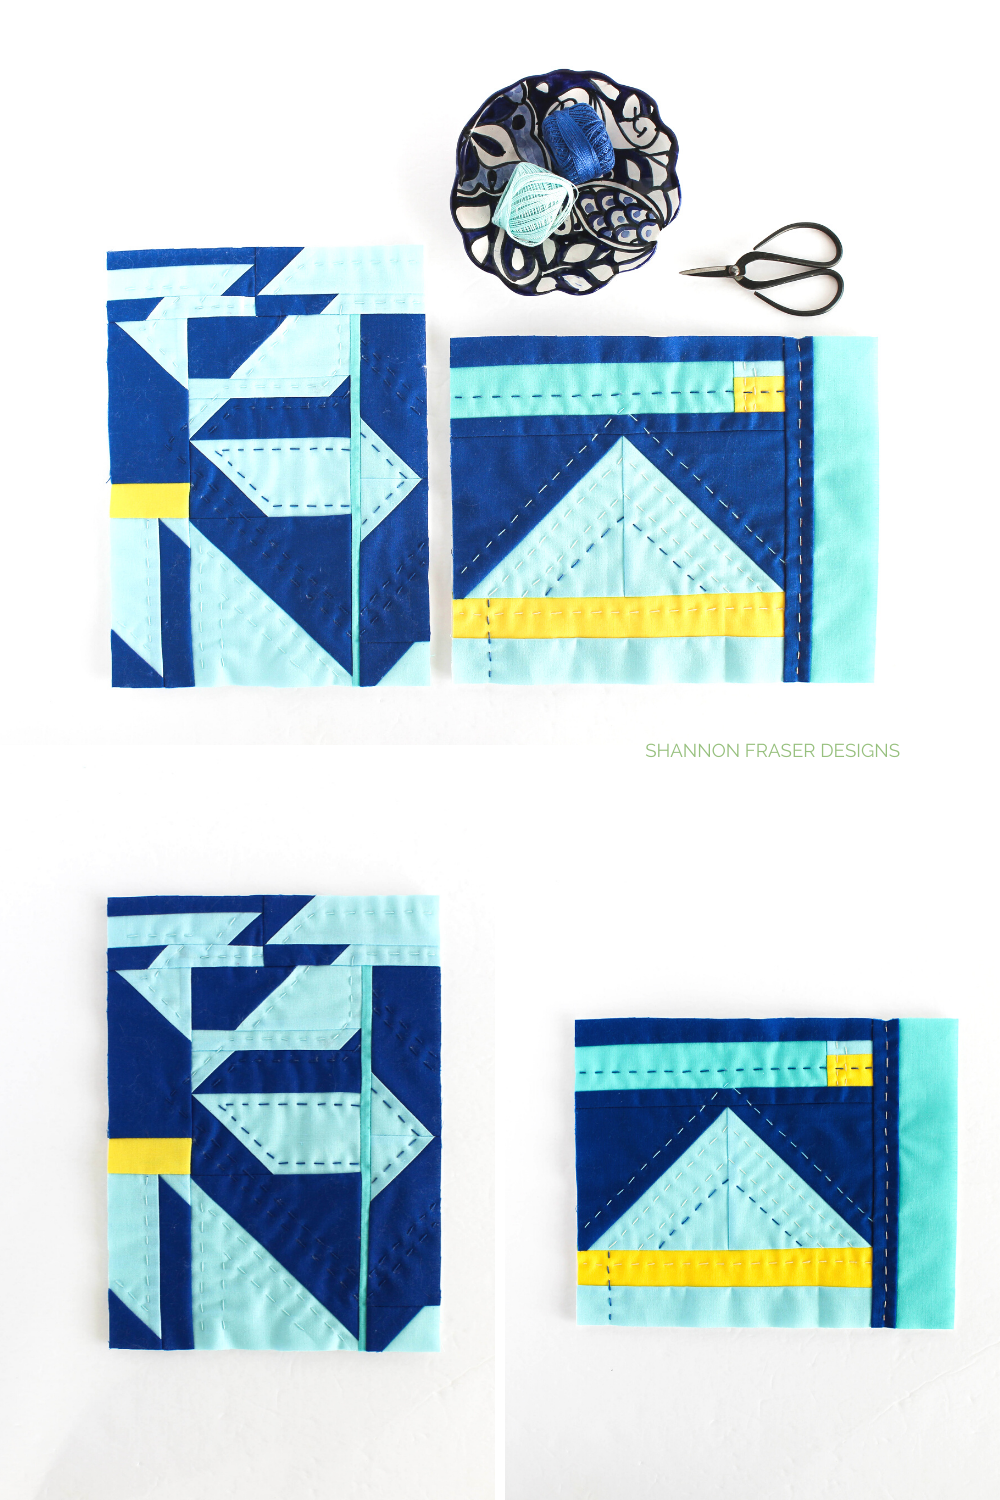 Blue and yellow modern abstract mini improv art quilts hand quilted and made using fabric scraps for a sustainable art project | Shannon Fraser Designs #modernquilter #modernfiberart